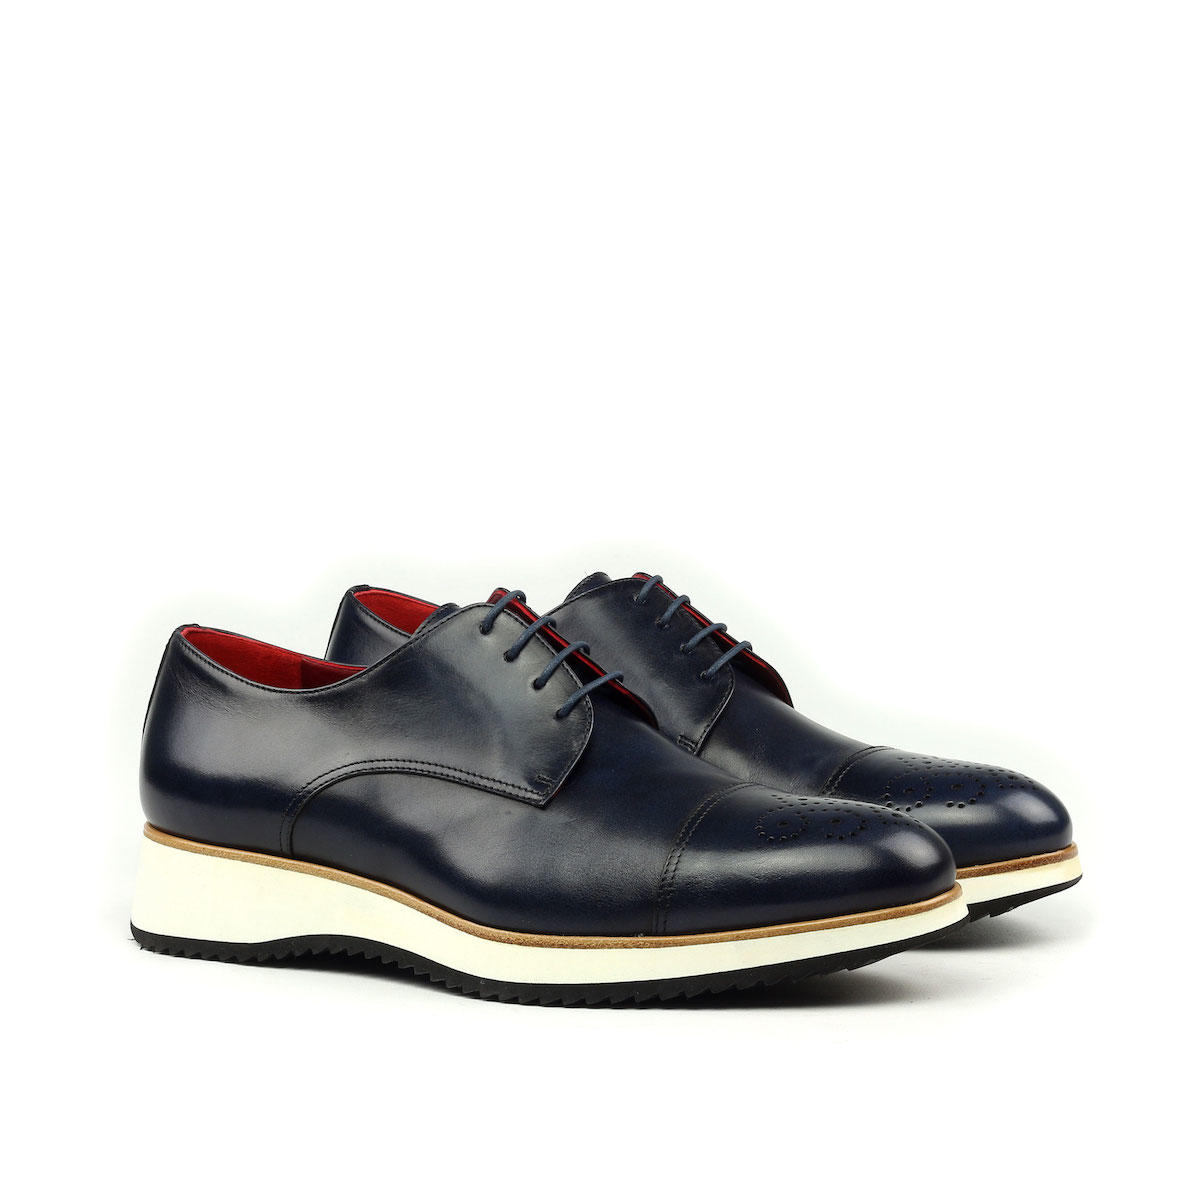 Manor of London 'The Derby'  Navy Painted Calfskin w/ Running Sole Shoe Luxury Custom Initials Monogrammed Front Side View